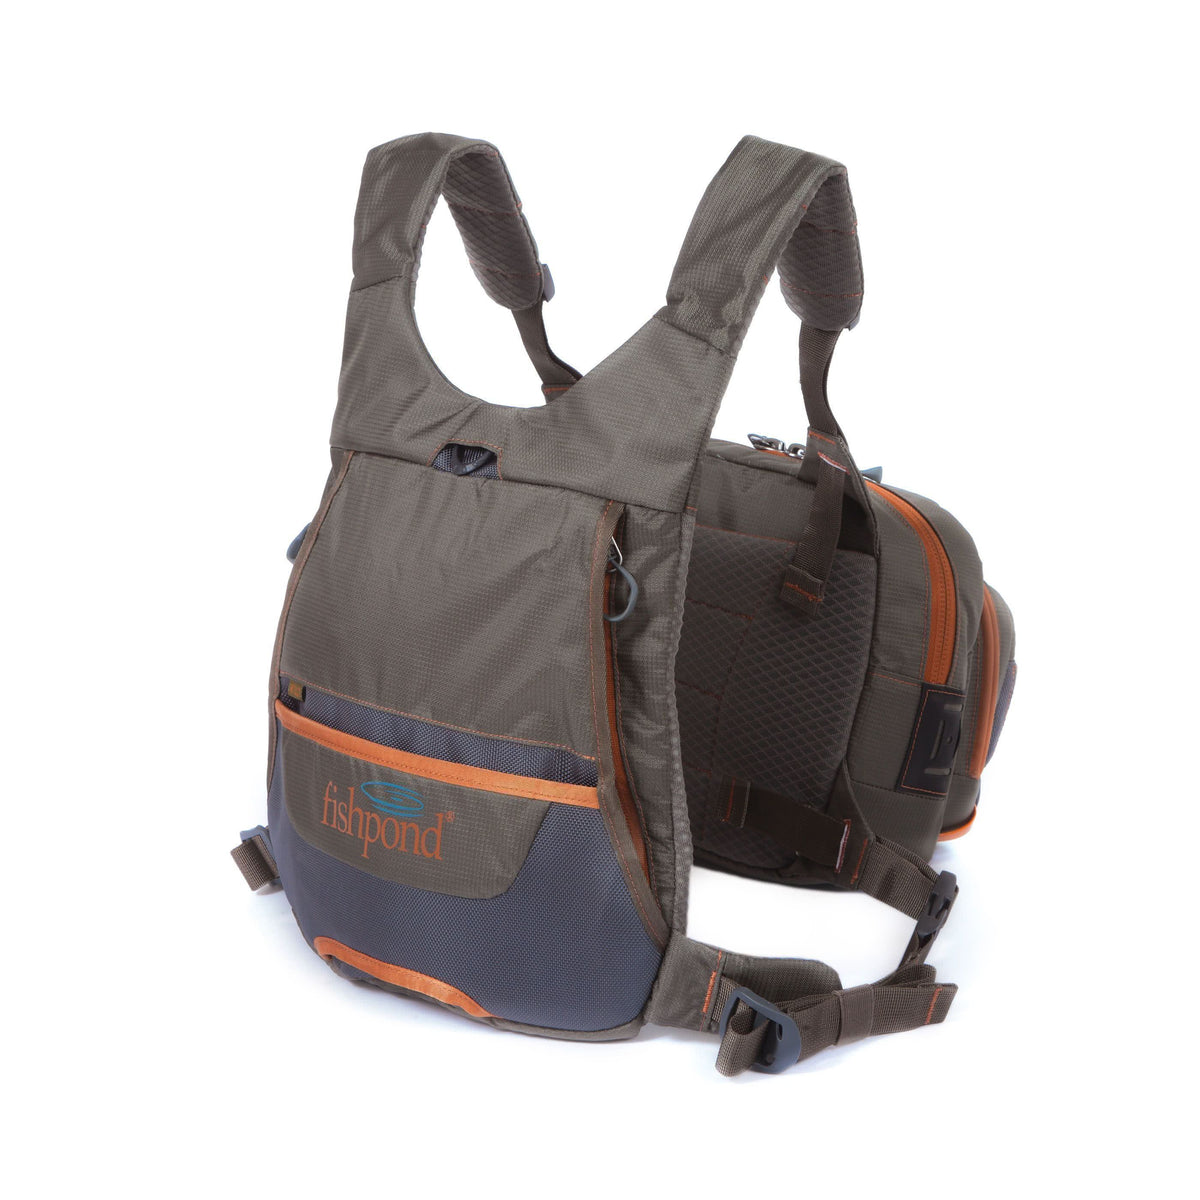 Fishpond Cross Current Chest Pack Back 2